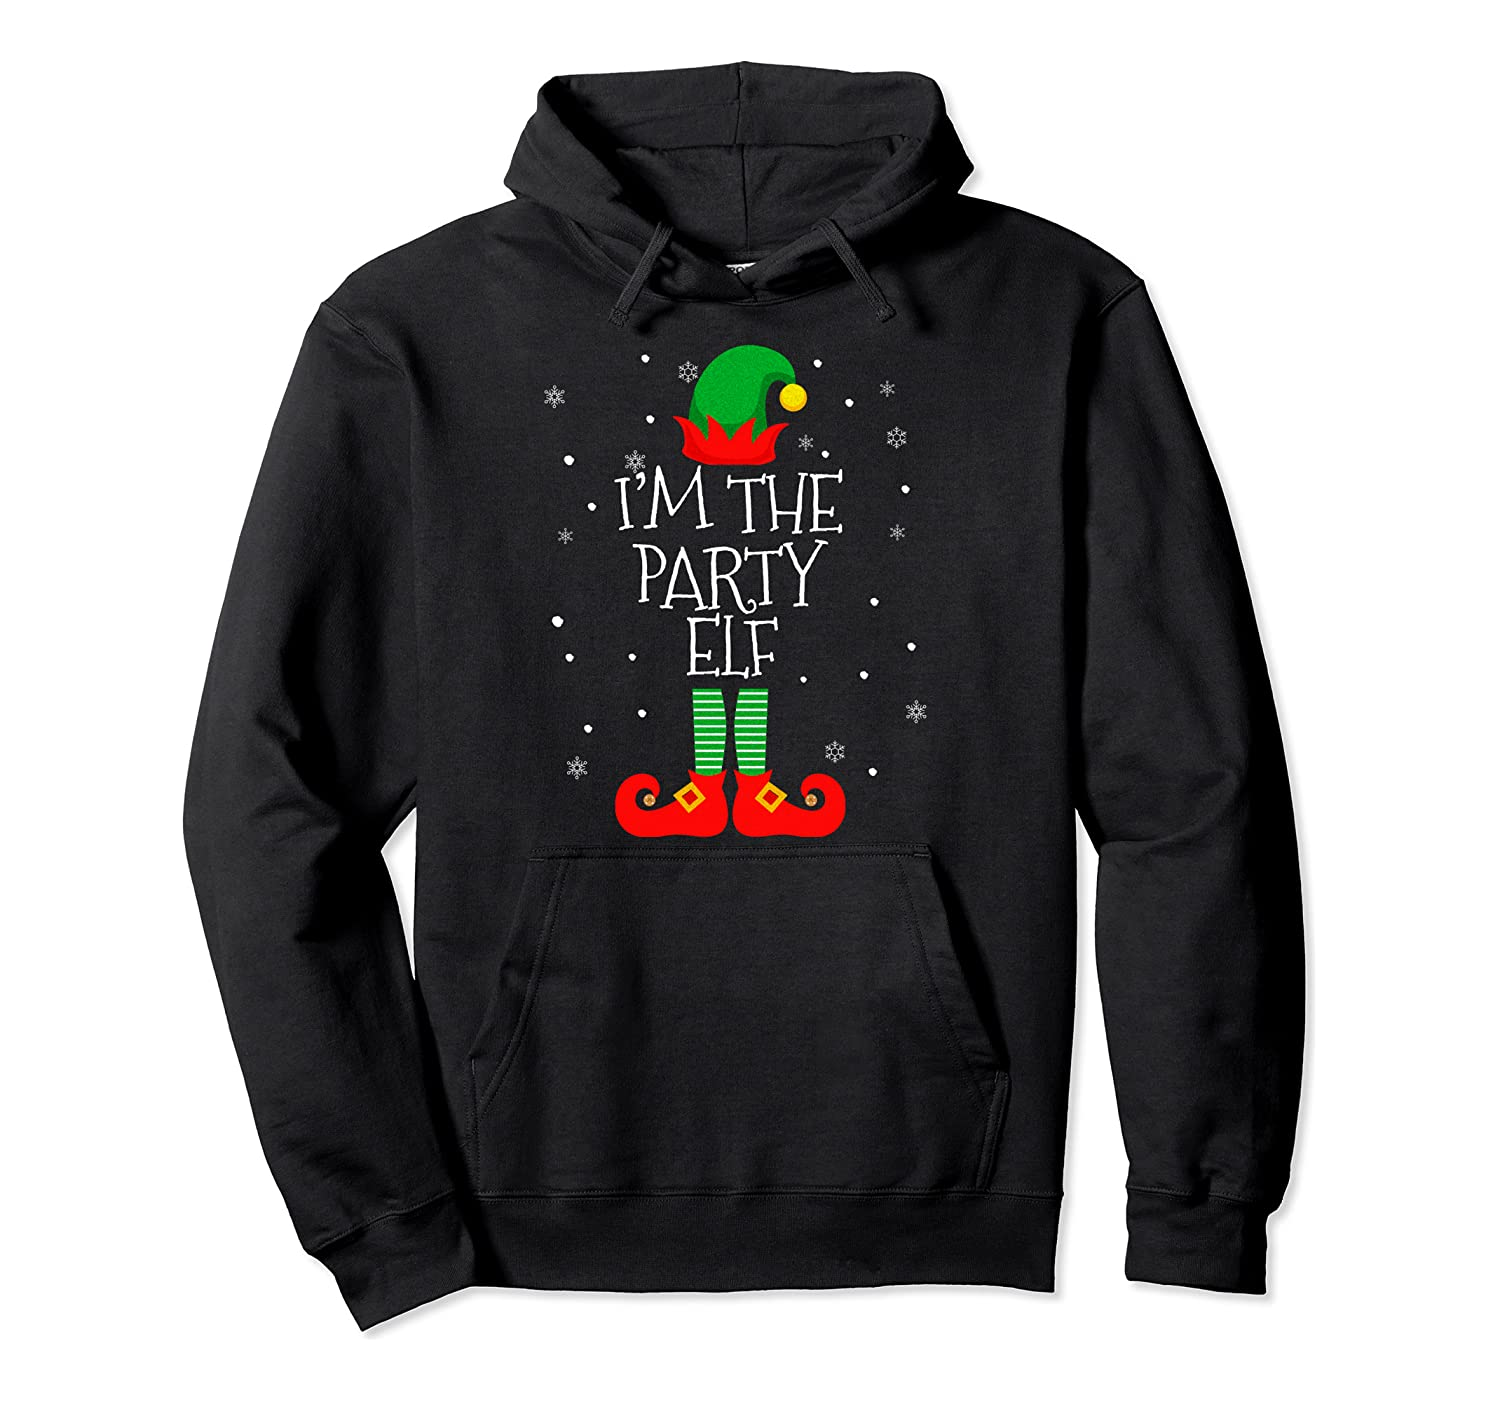 I'M THE Party ELF Christmas Xmas Elf Group Costume Gift Pullover Hoodie